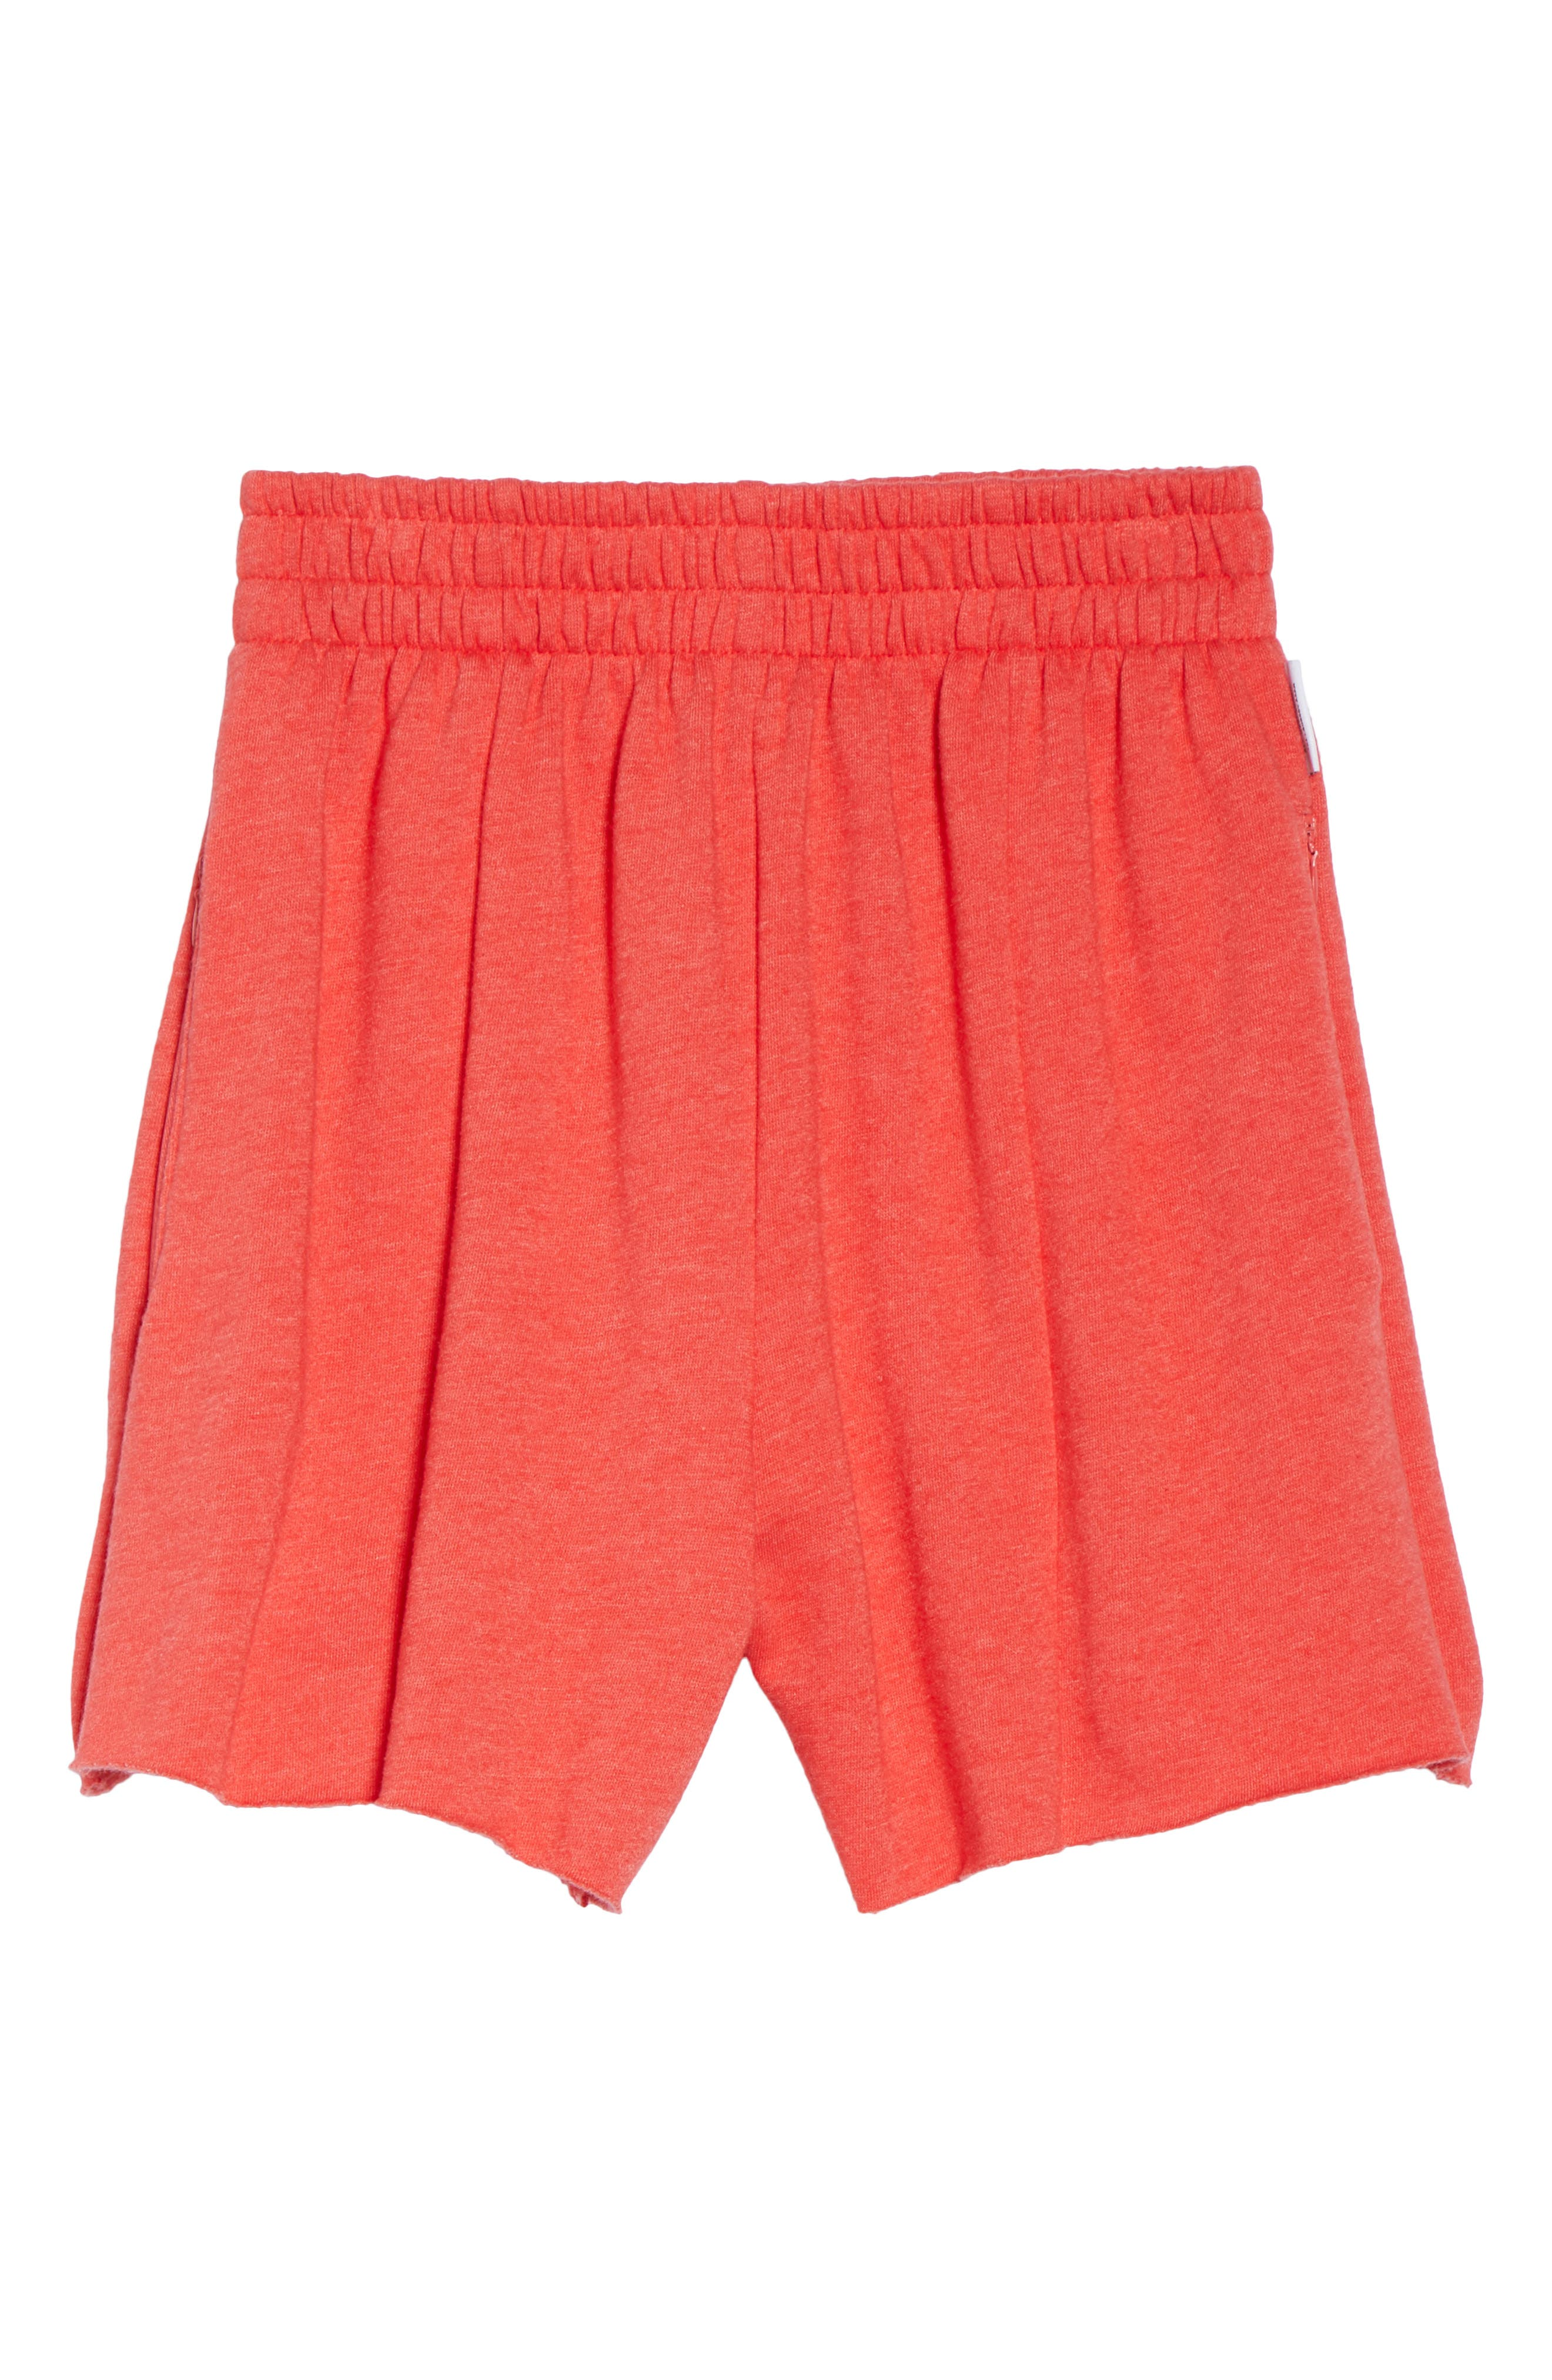 Bermuda Lounge Shorts,                             Alternate thumbnail 6, color,                             Love Red